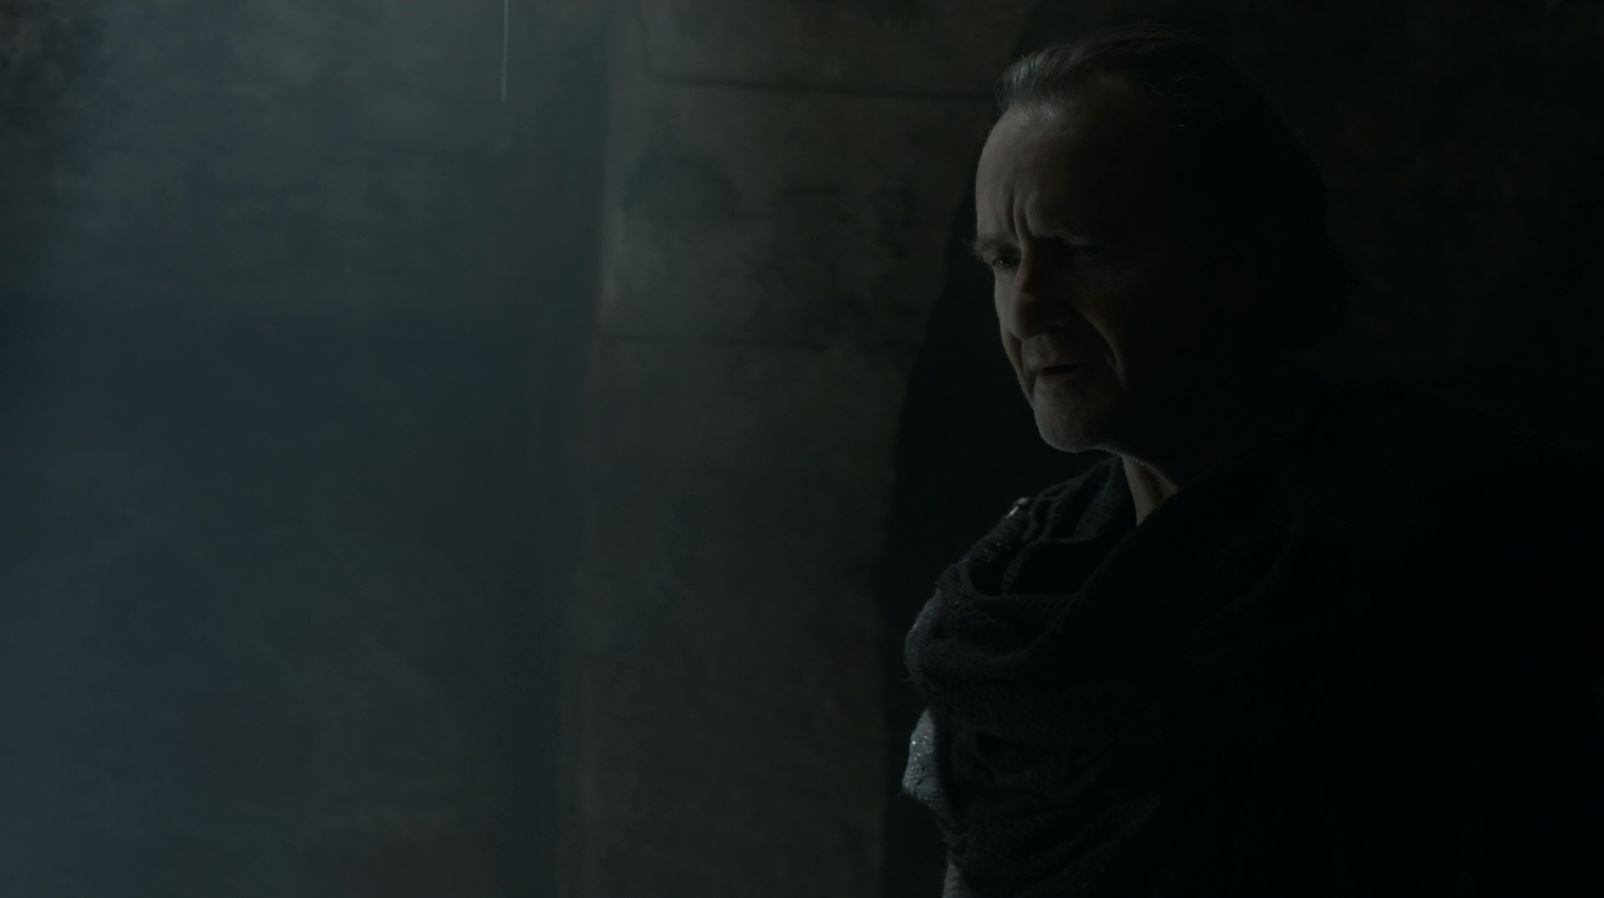 Qyburn (Anton Lesser). Game of Thrones S5Ep8 Hardhome Review